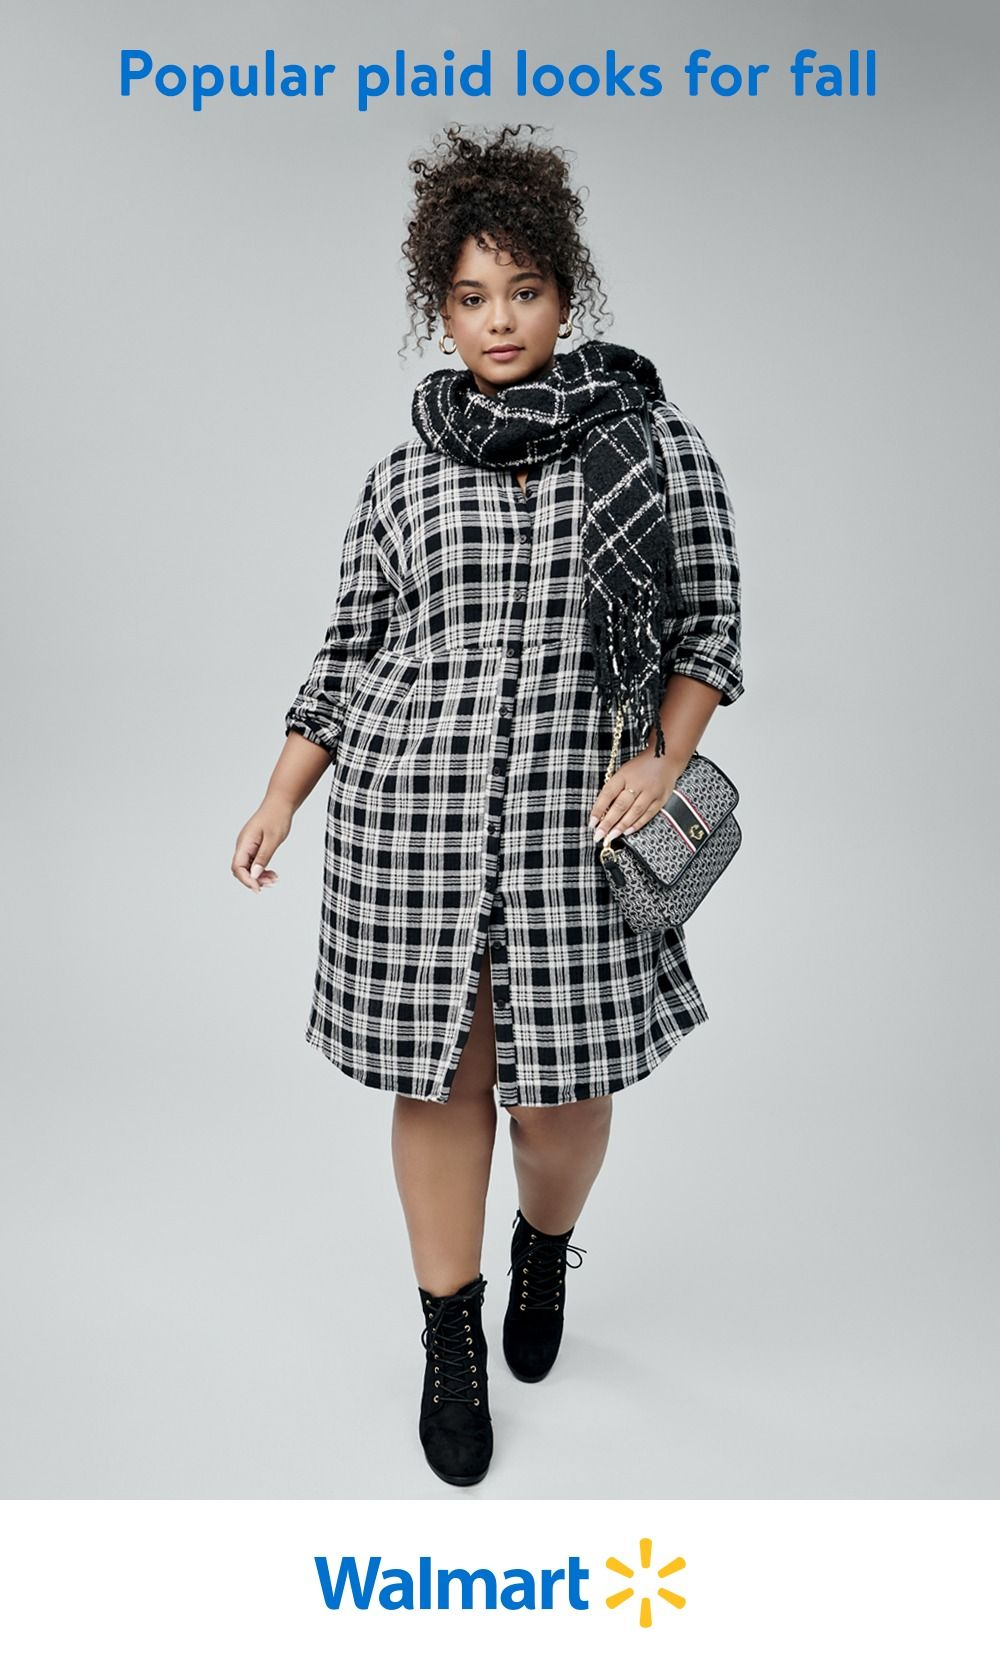 Find fashionable plaid outfits and accessories at Walmart. From buffalo check to tartan and everything in between, we've got patterned looks you'll love.